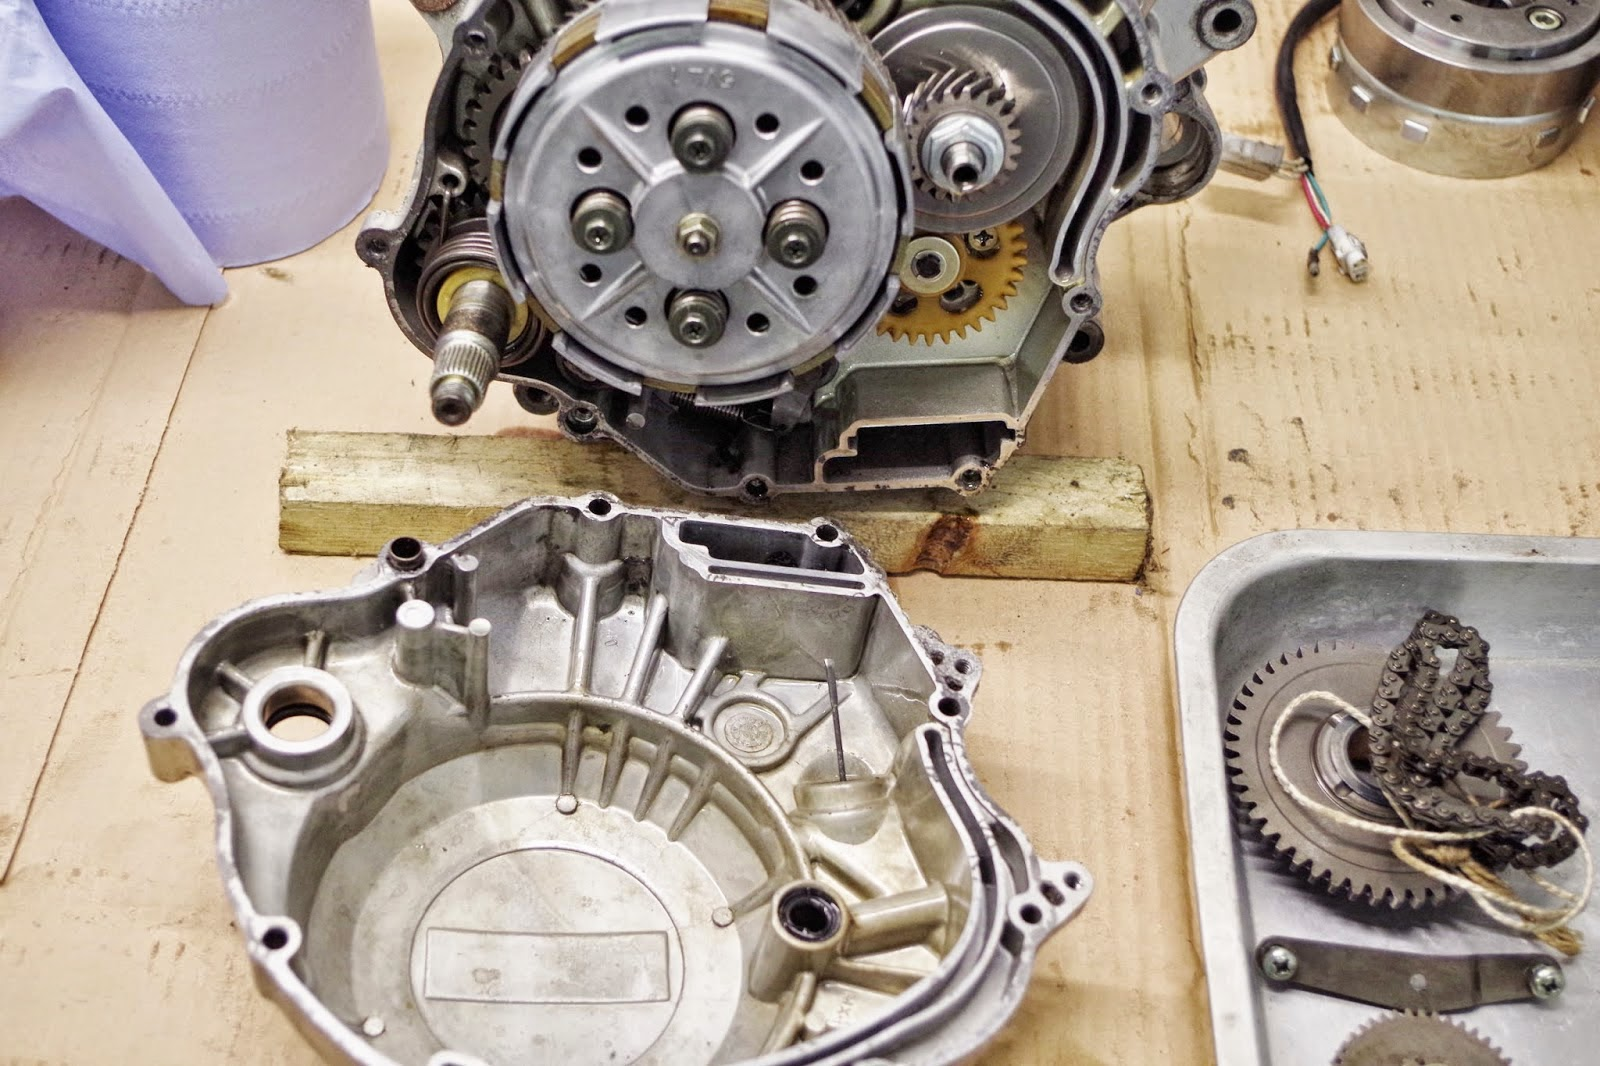 Yamaha YBR 125 Owner Blog : Yamaha YBR 125 Clutch problems